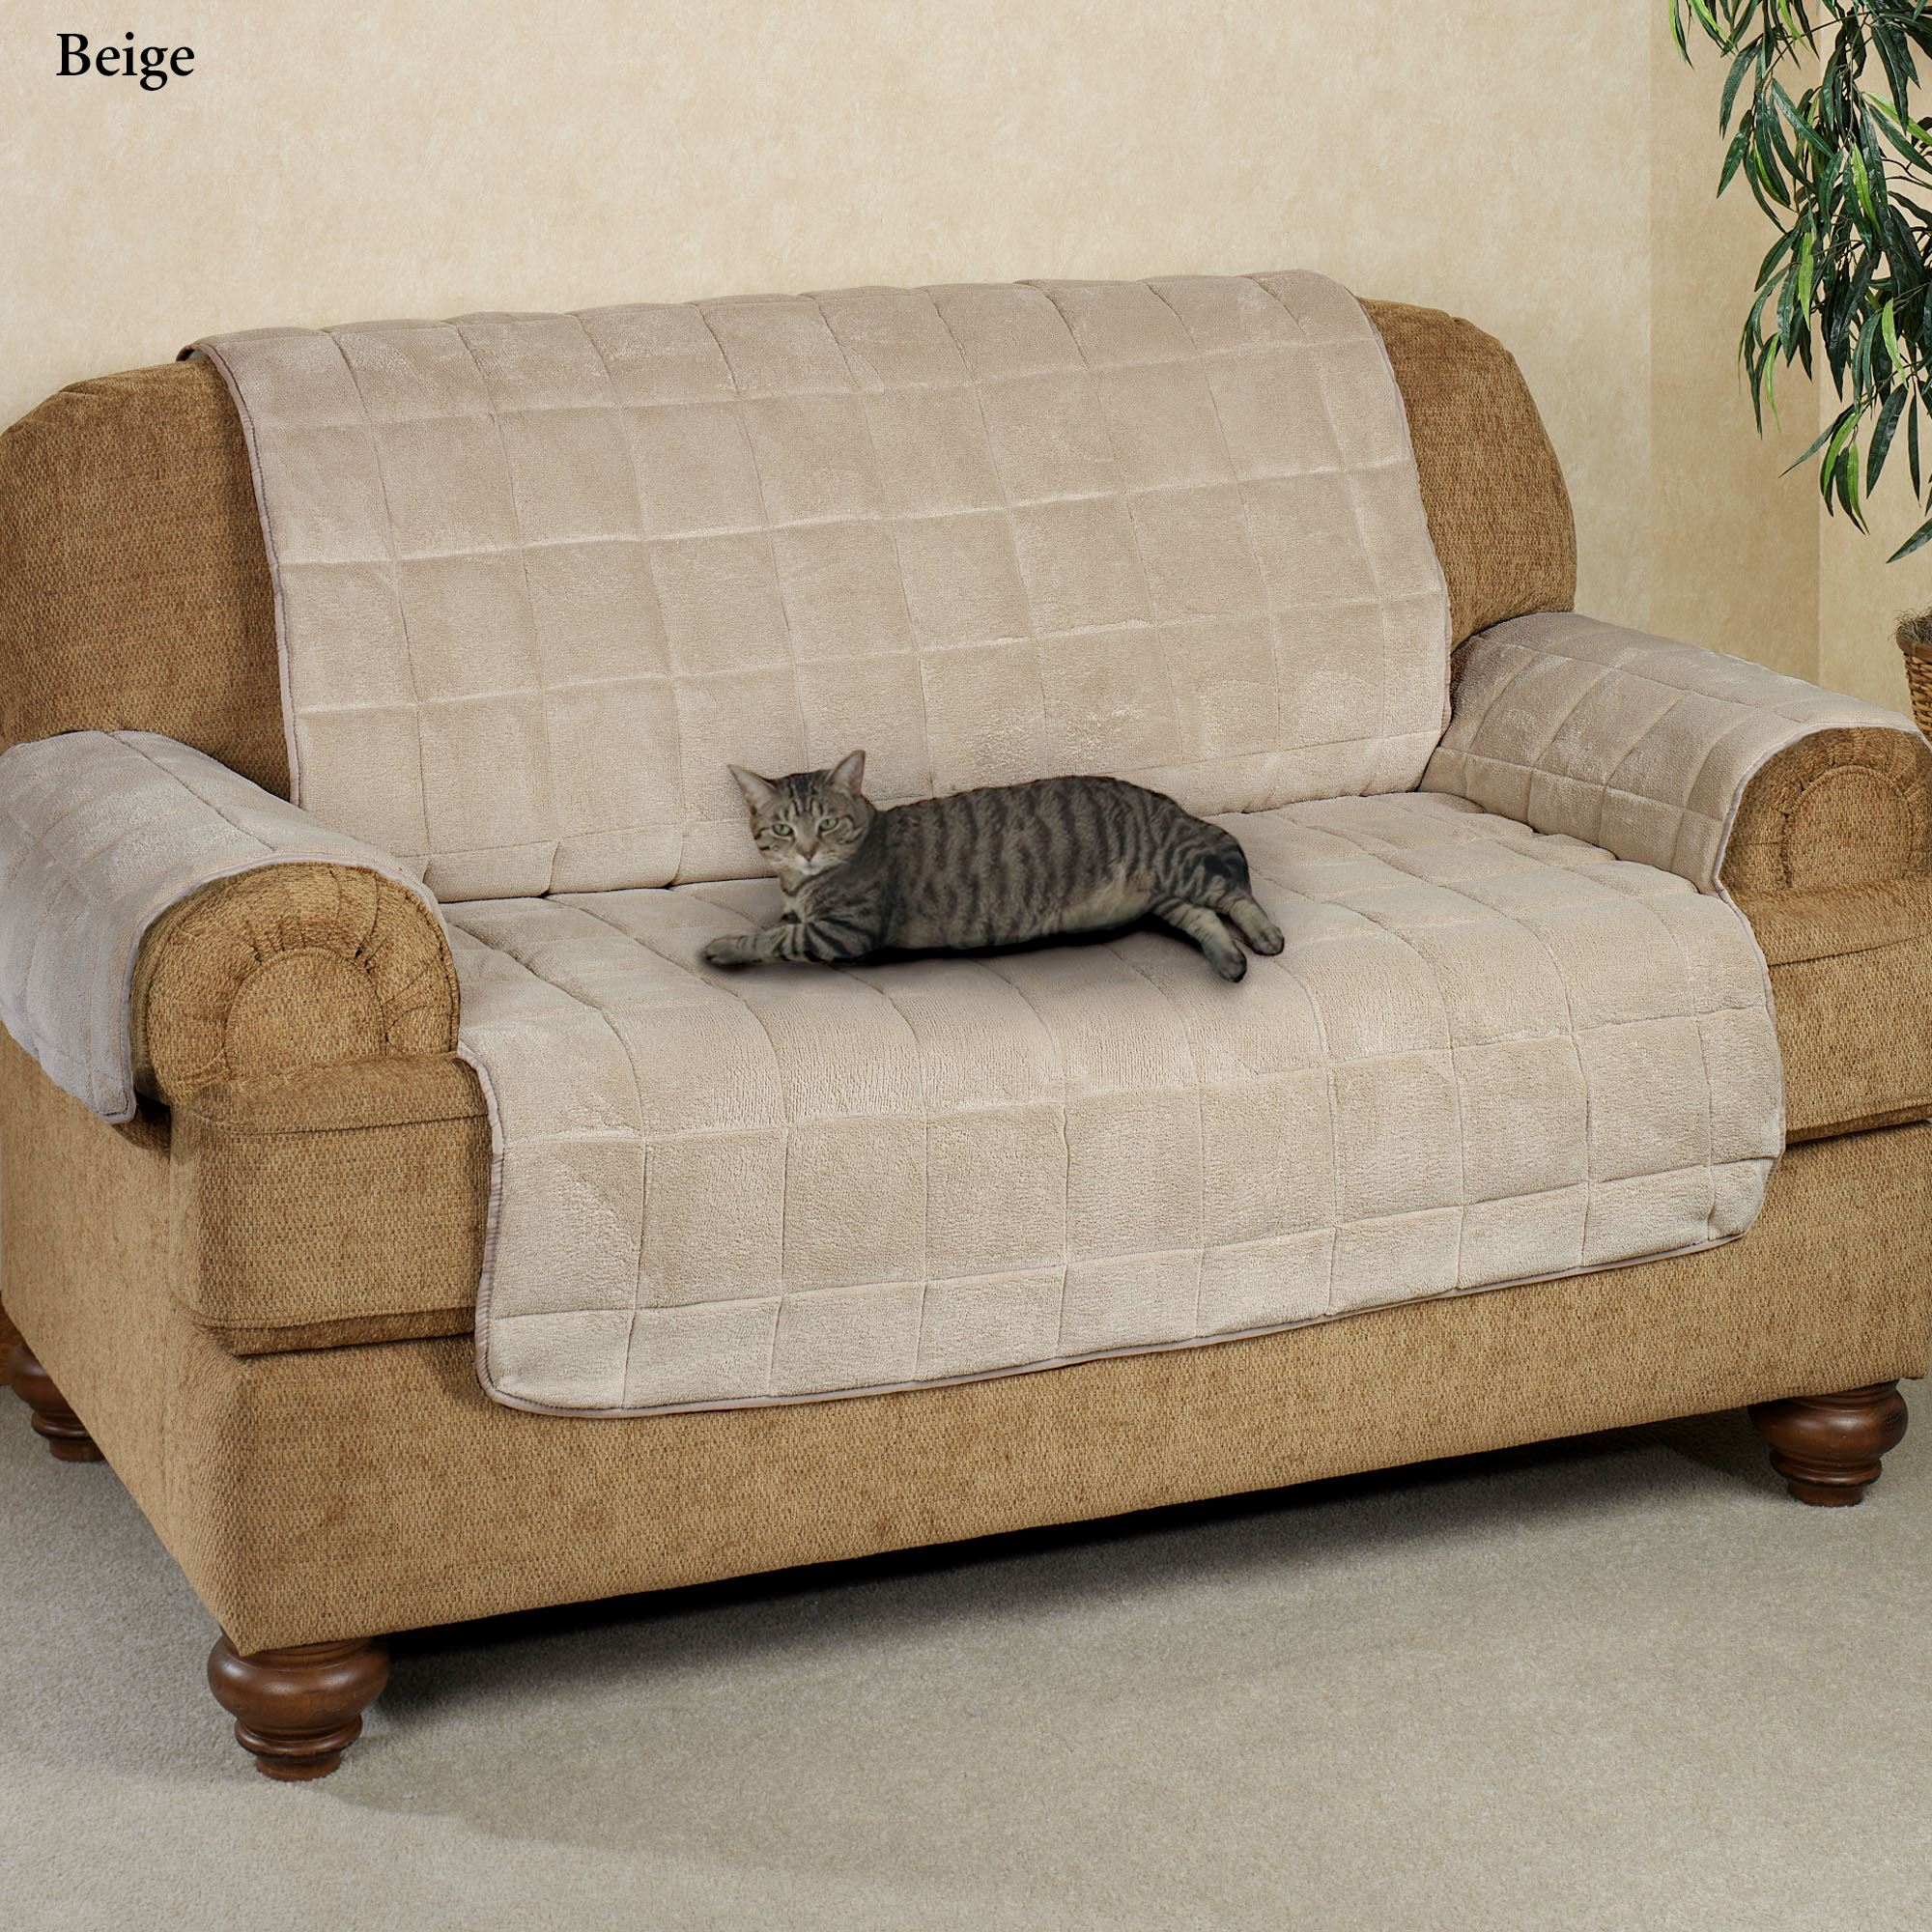 Attirant Microplush Pet Furniture Sofa Cover Sofa